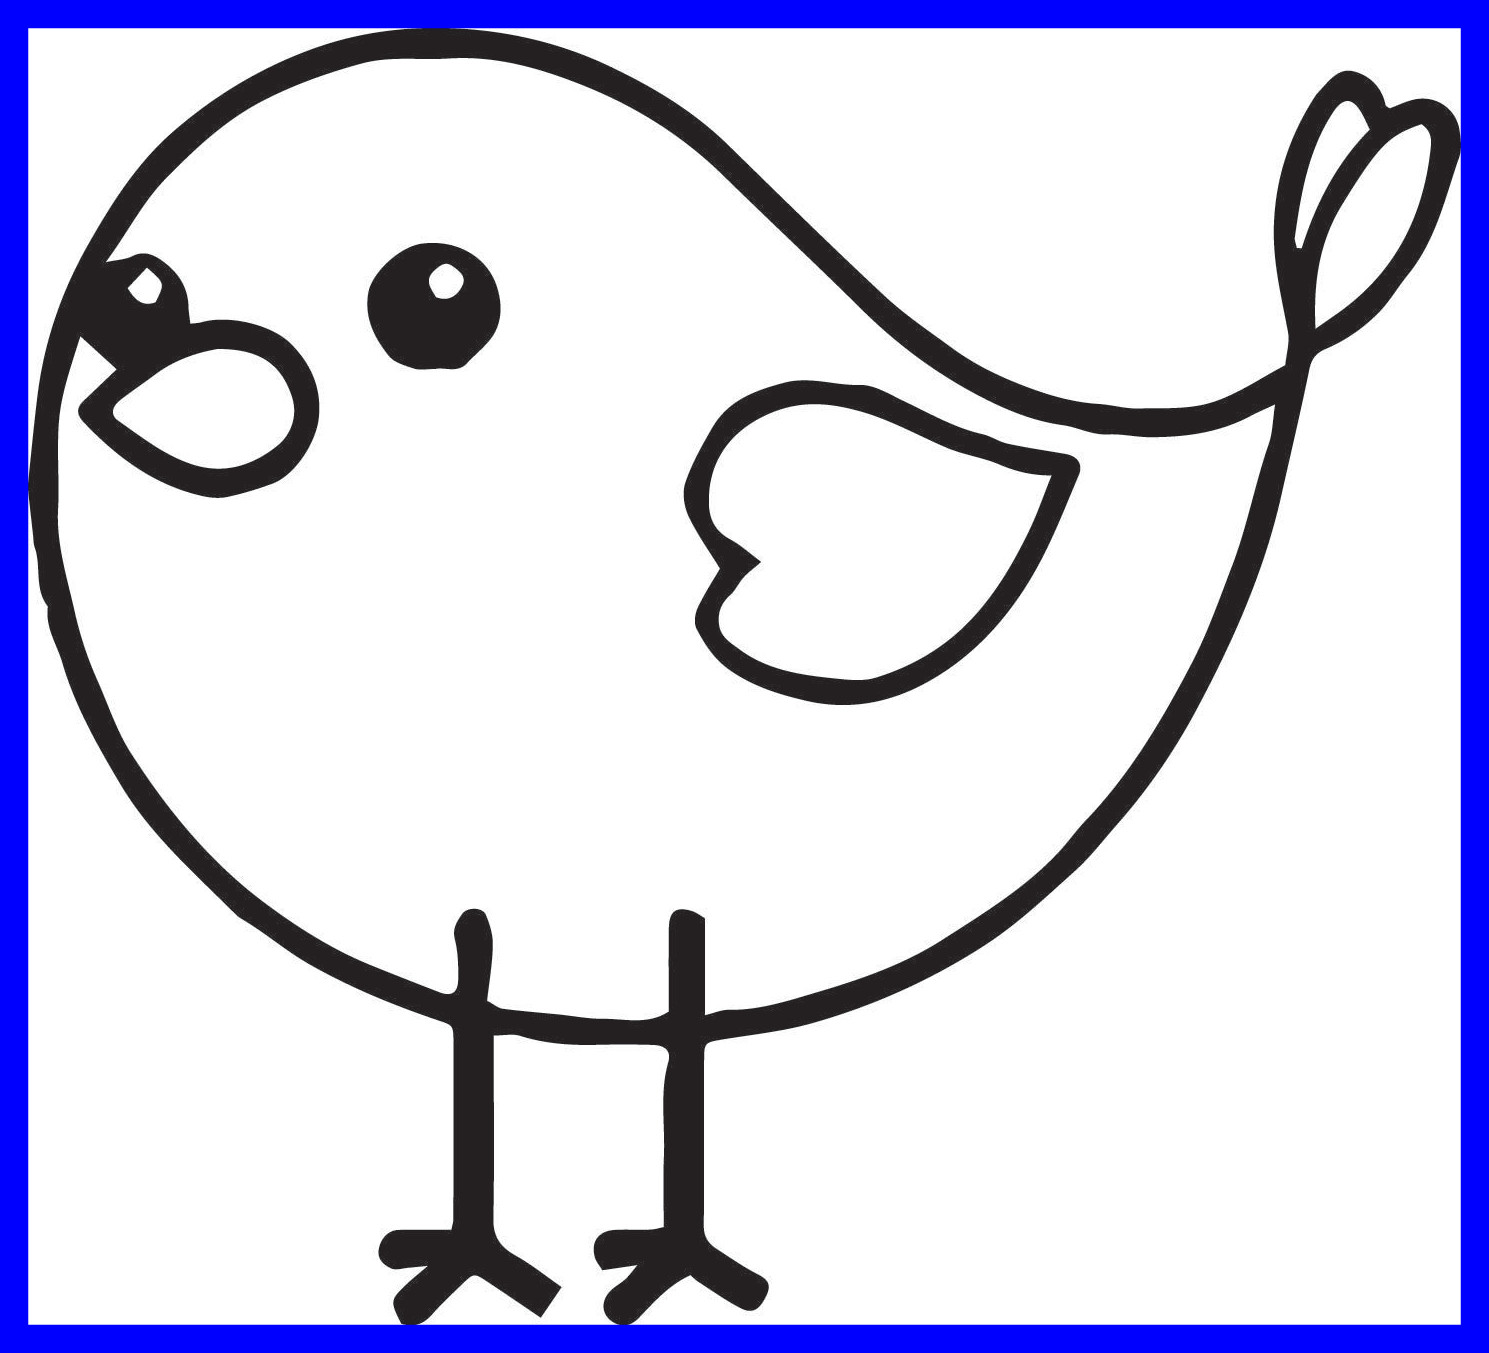 Colouring Page Org at GetDrawings.com | Free for personal use ...